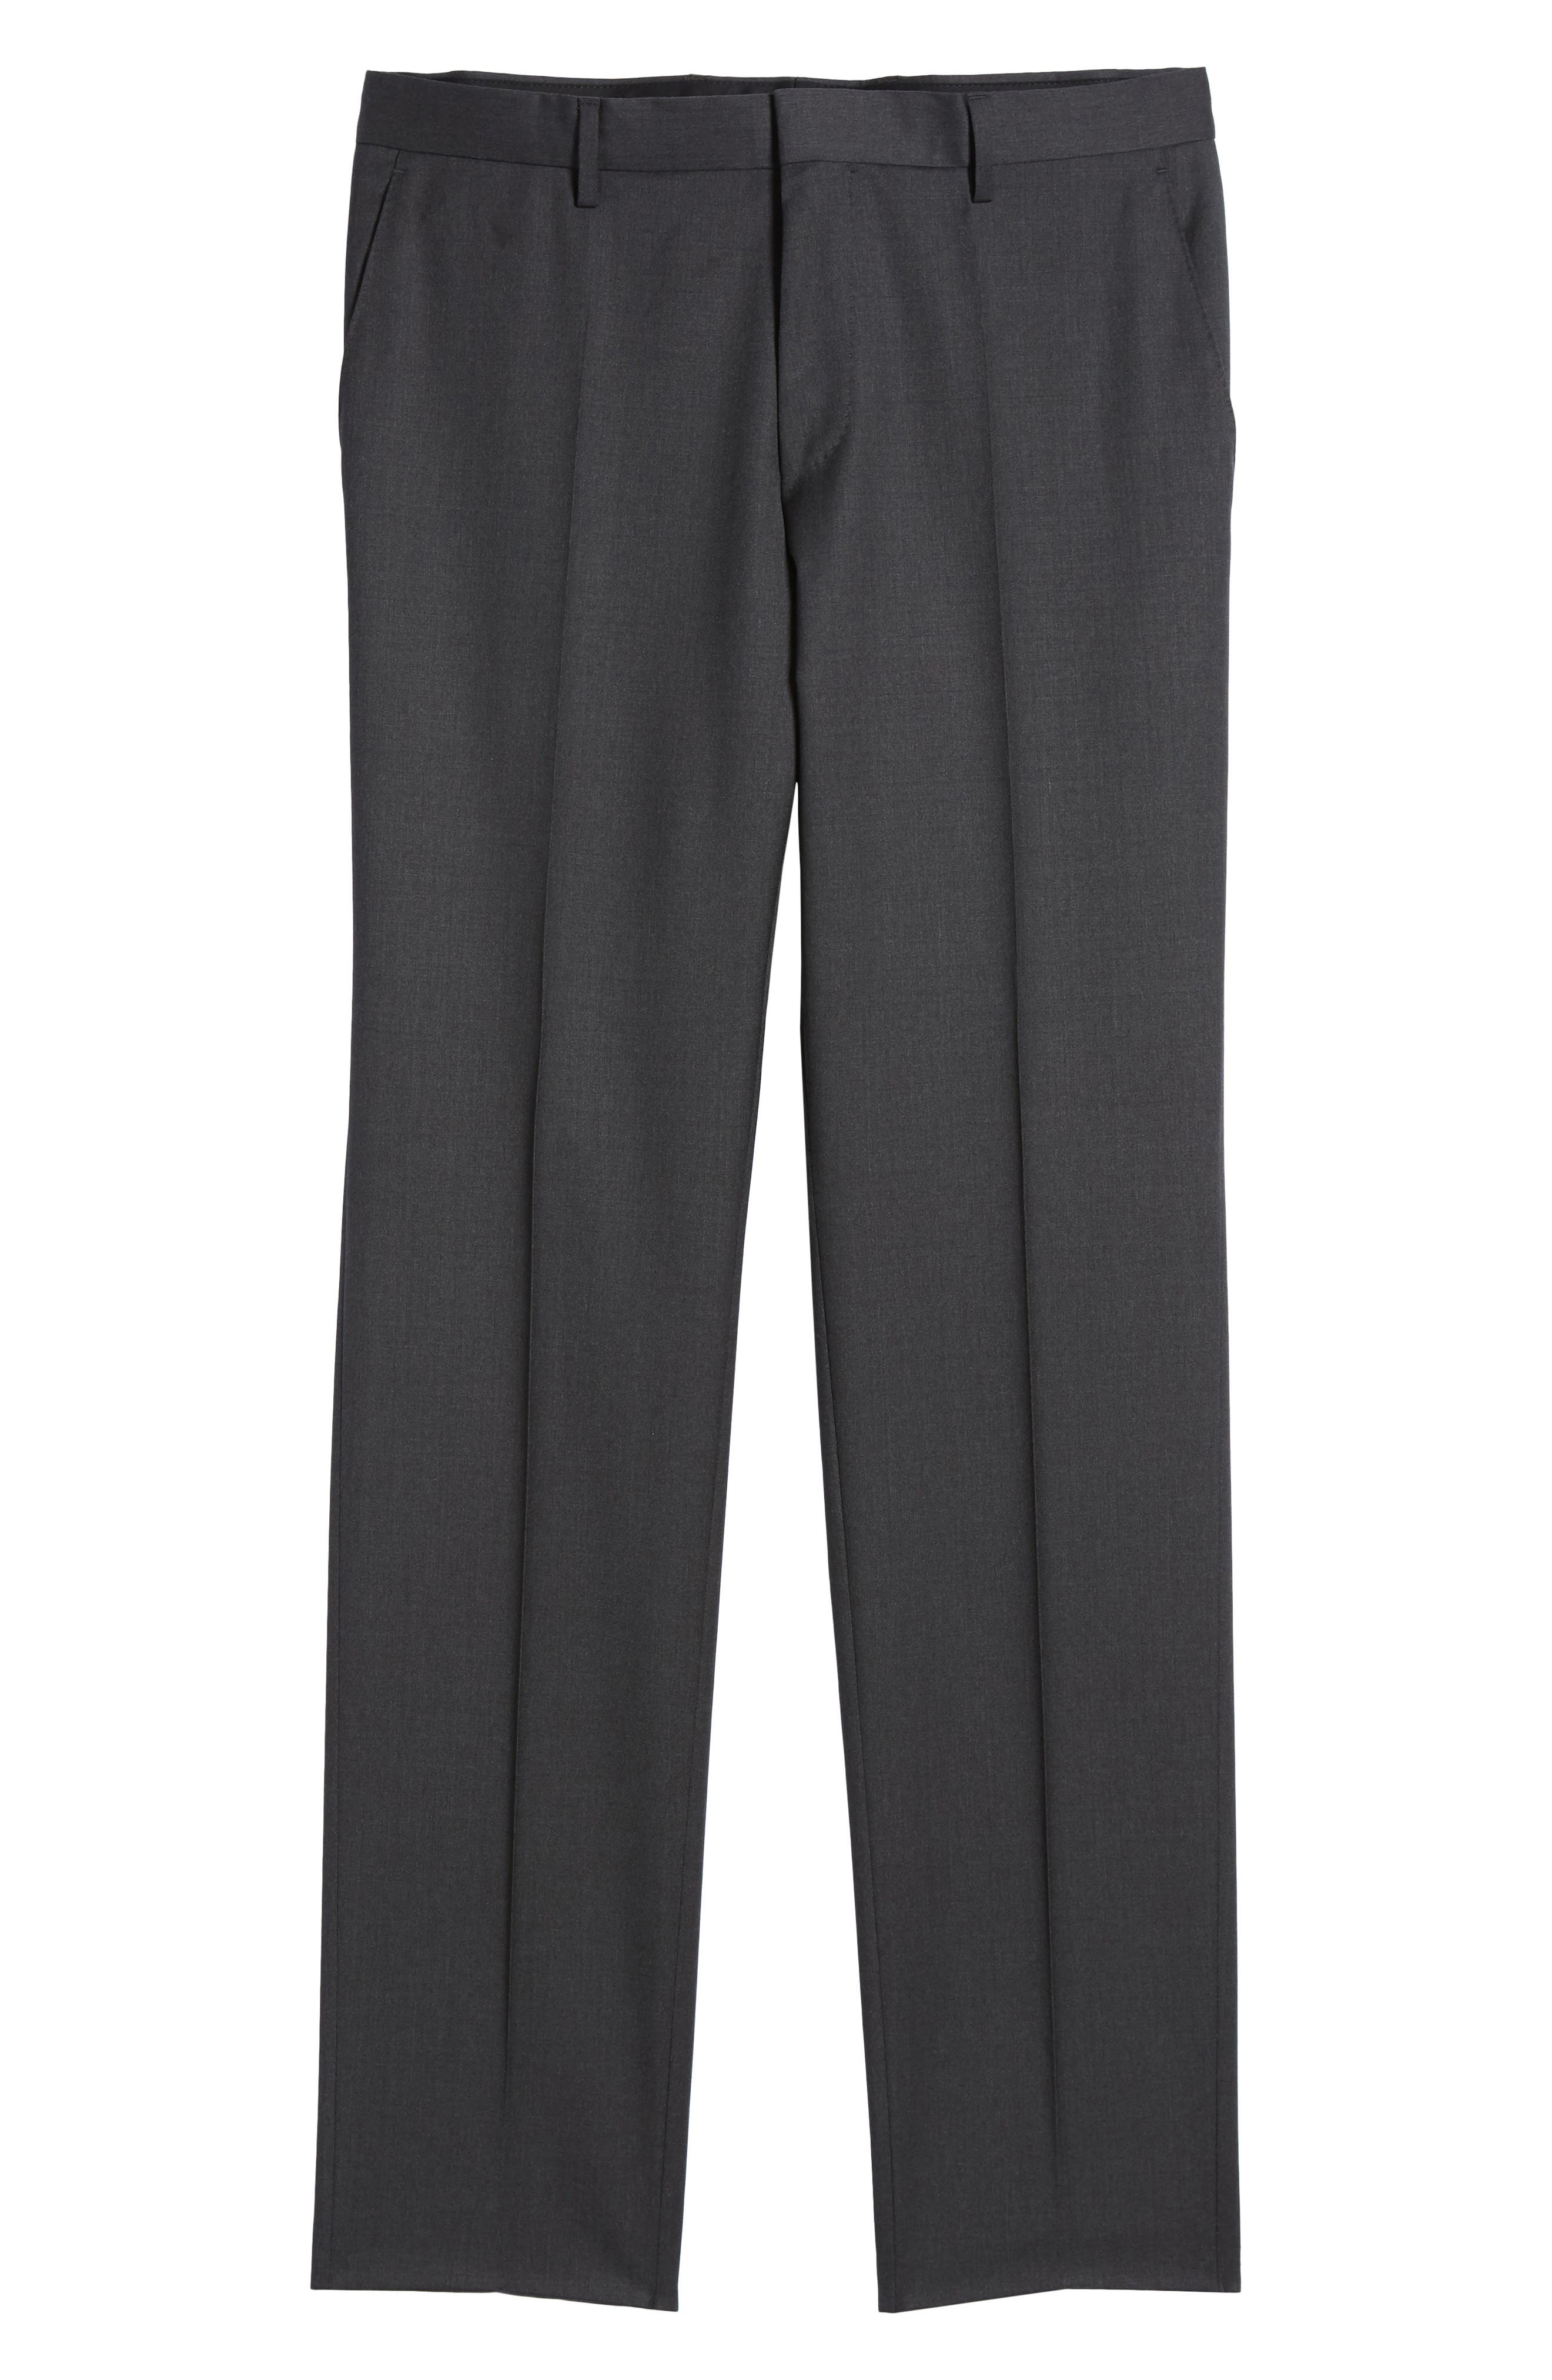 Gibson CYL Flat Front Solid Wool Trousers,                             Alternate thumbnail 6, color,                             DARK GREY